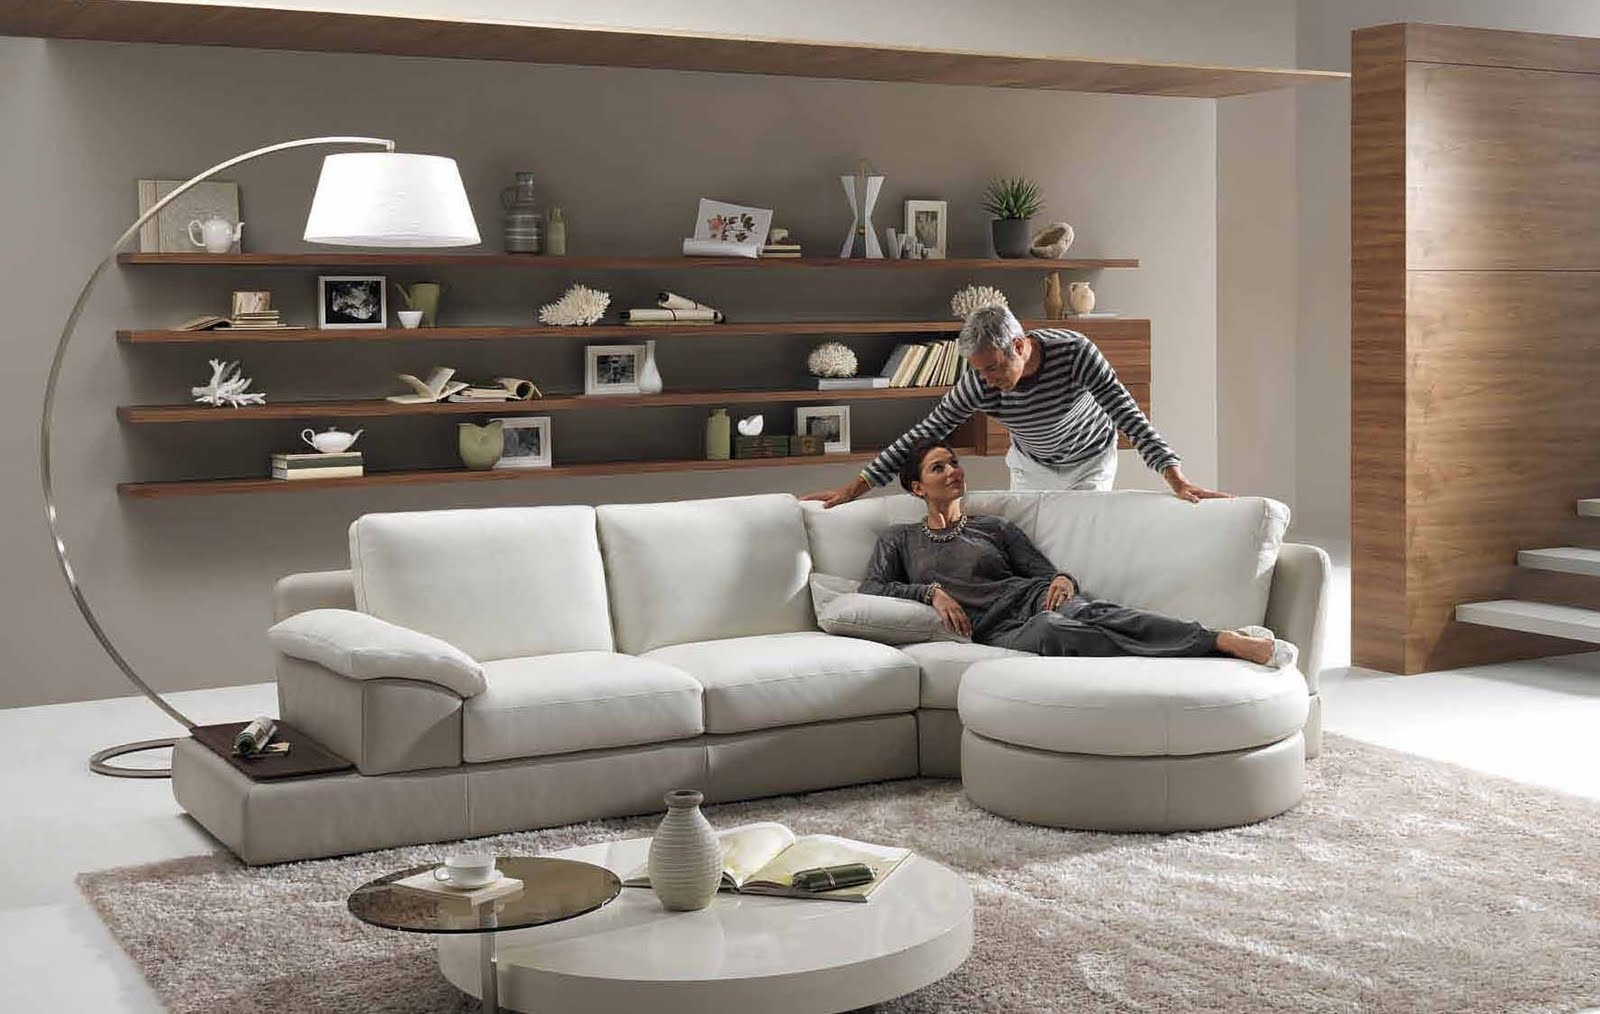 Modern Lamp Designers In Living Room Decoration (View 8 of 10)